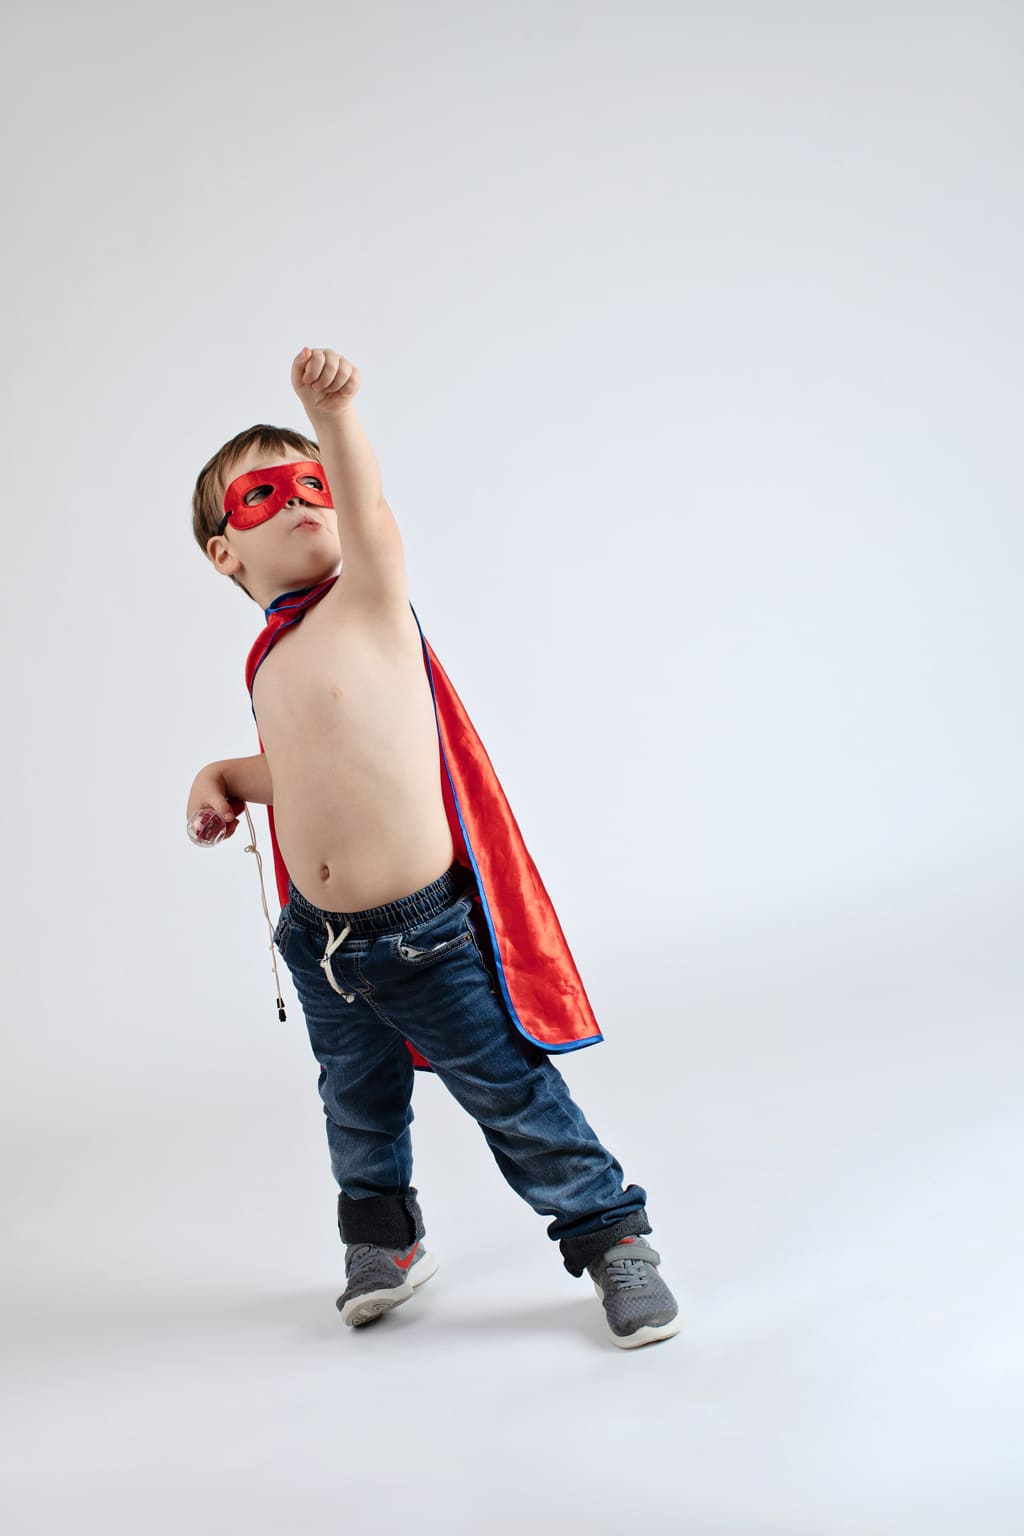 young boy dressed up as superhero plays around in the studio